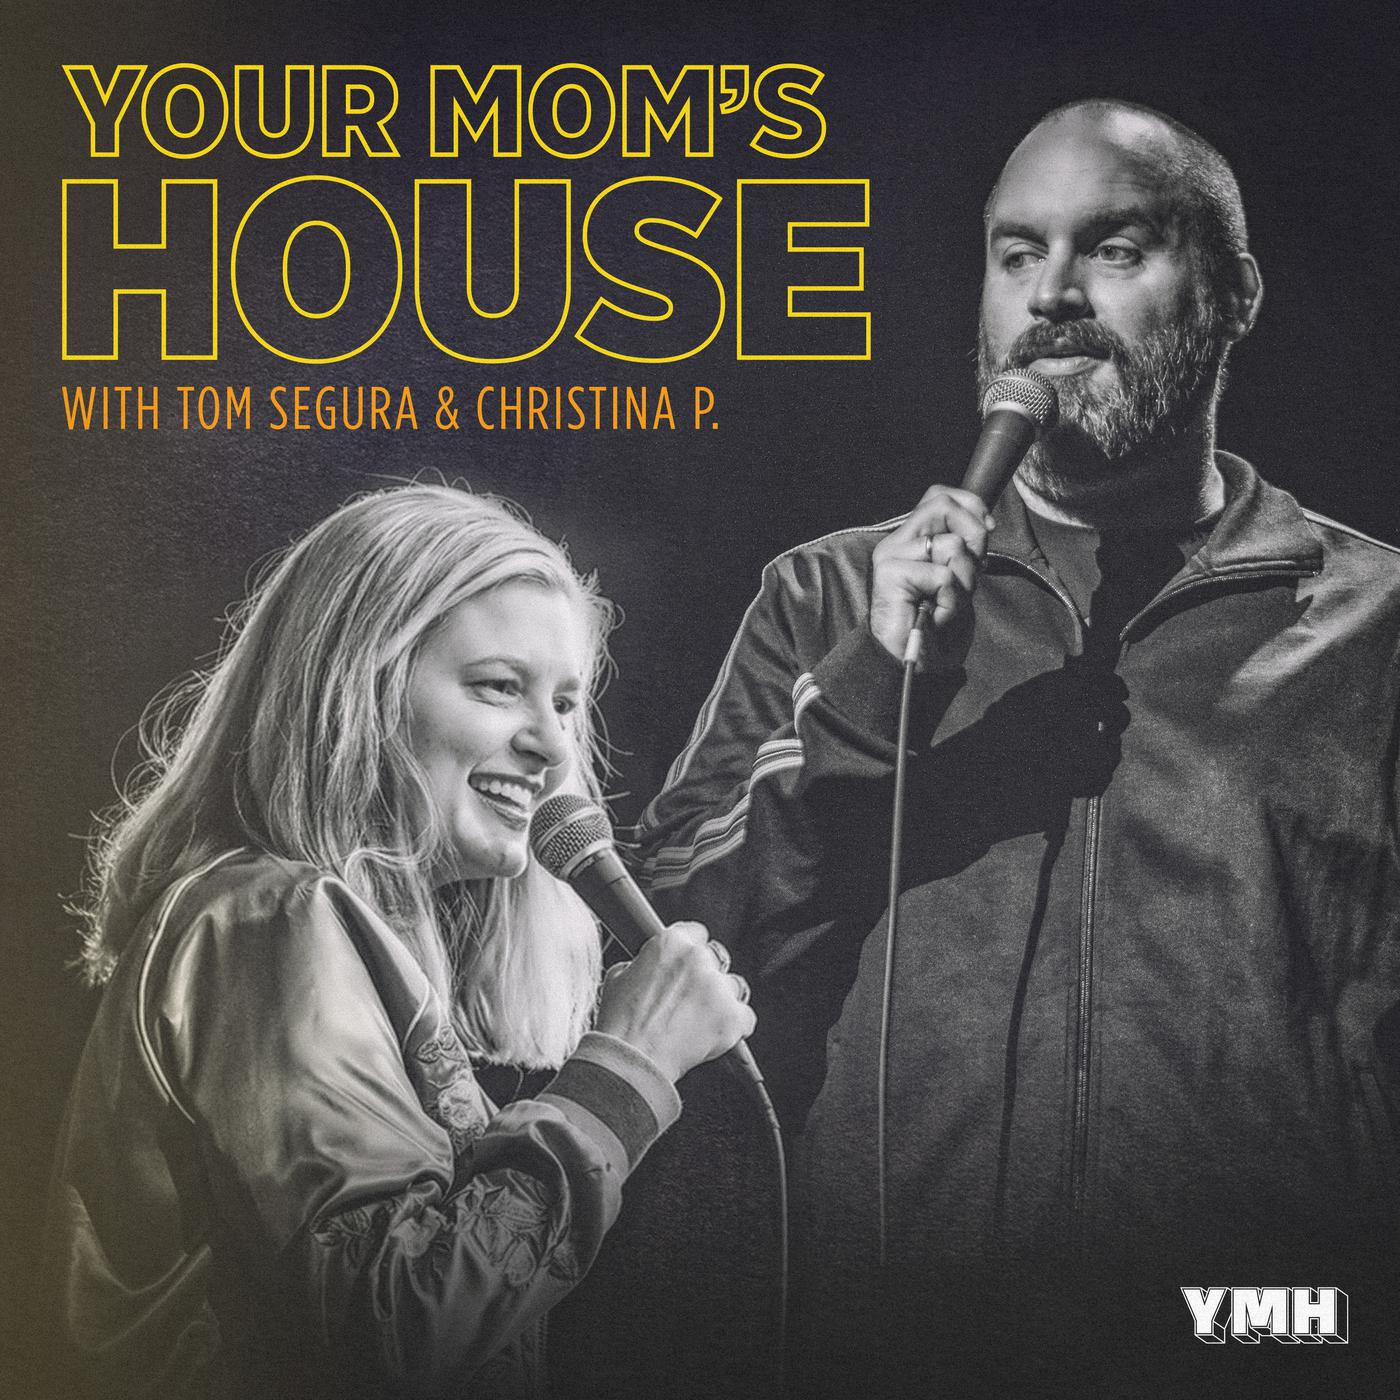 543 Bert Kreischer Your Mom S House With Christina P And Tom Segura Listen Notes See what josh potter (joshfredpott) has discovered on pinterest, the world's biggest collection of ideas. house with christina p and tom segura